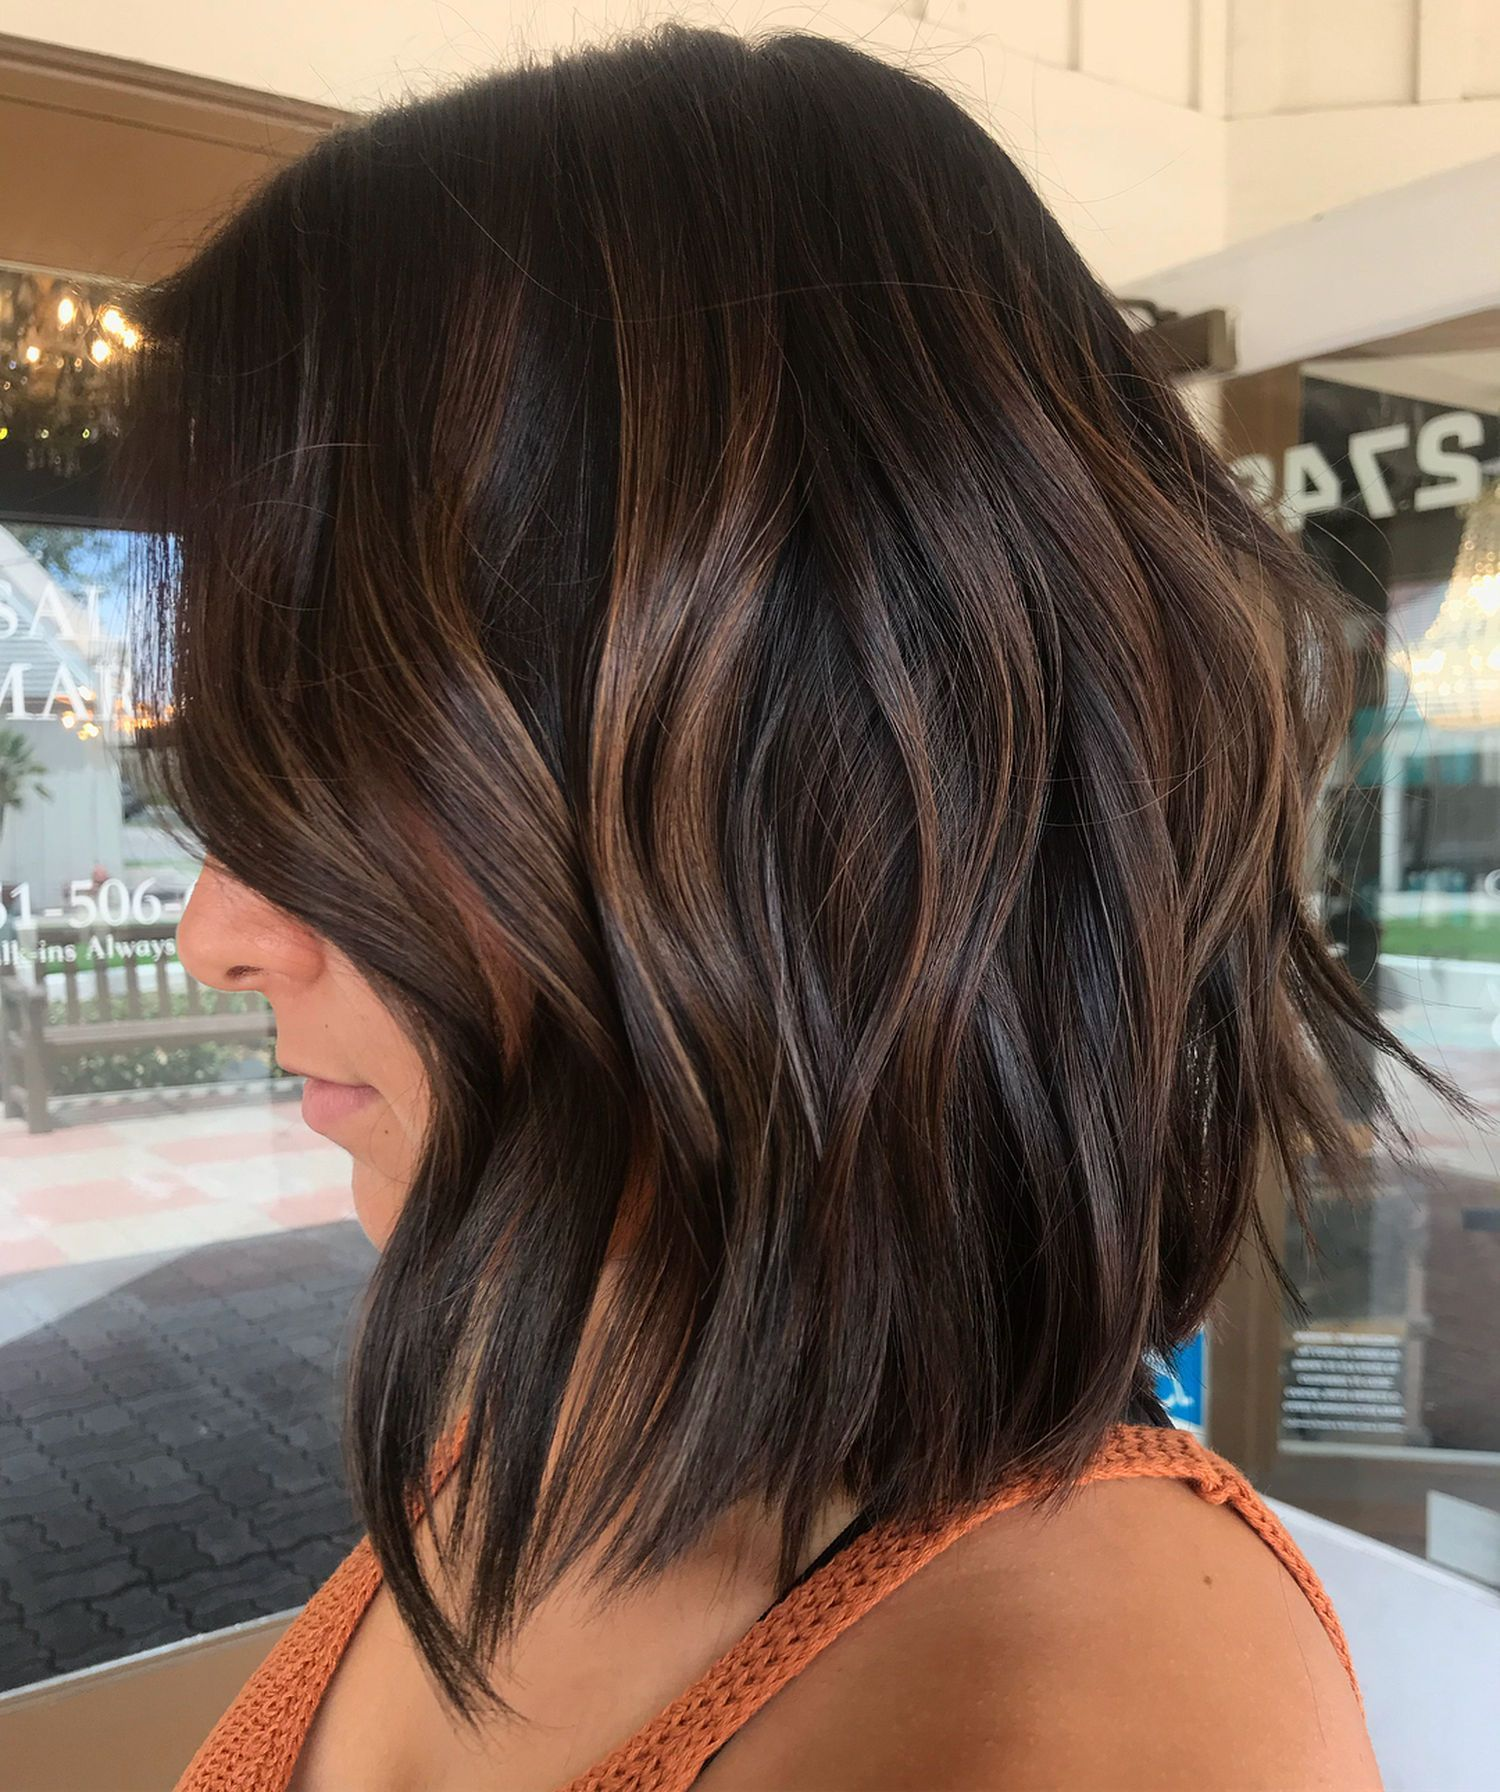 19 Subtle And Soft Highlights Hair Styles Short Dark Hair Brown Hair Balayage